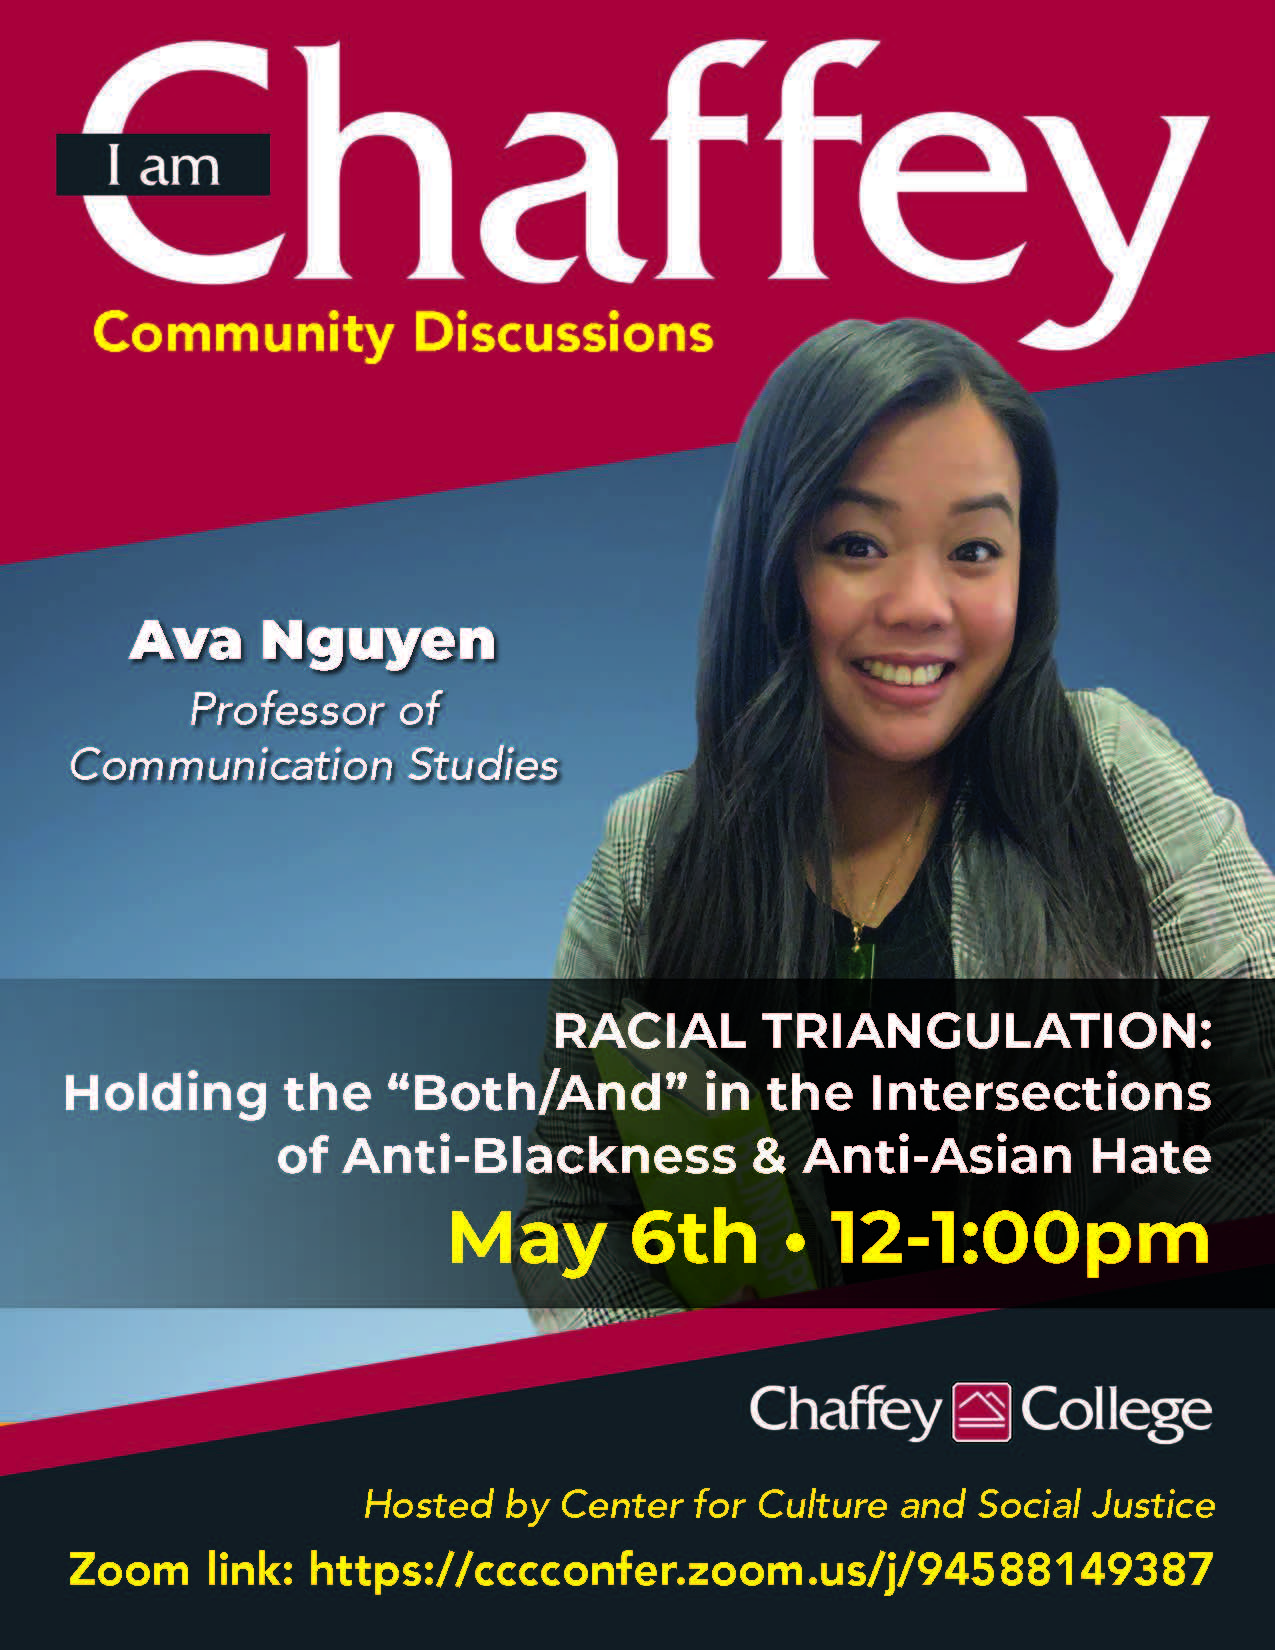 """I am Chaffey: RACIAL TRIANGULATION: Holding the """"Both/And"""" in the Intersections of Anti-Blackness & Anti-Asian Hate"""